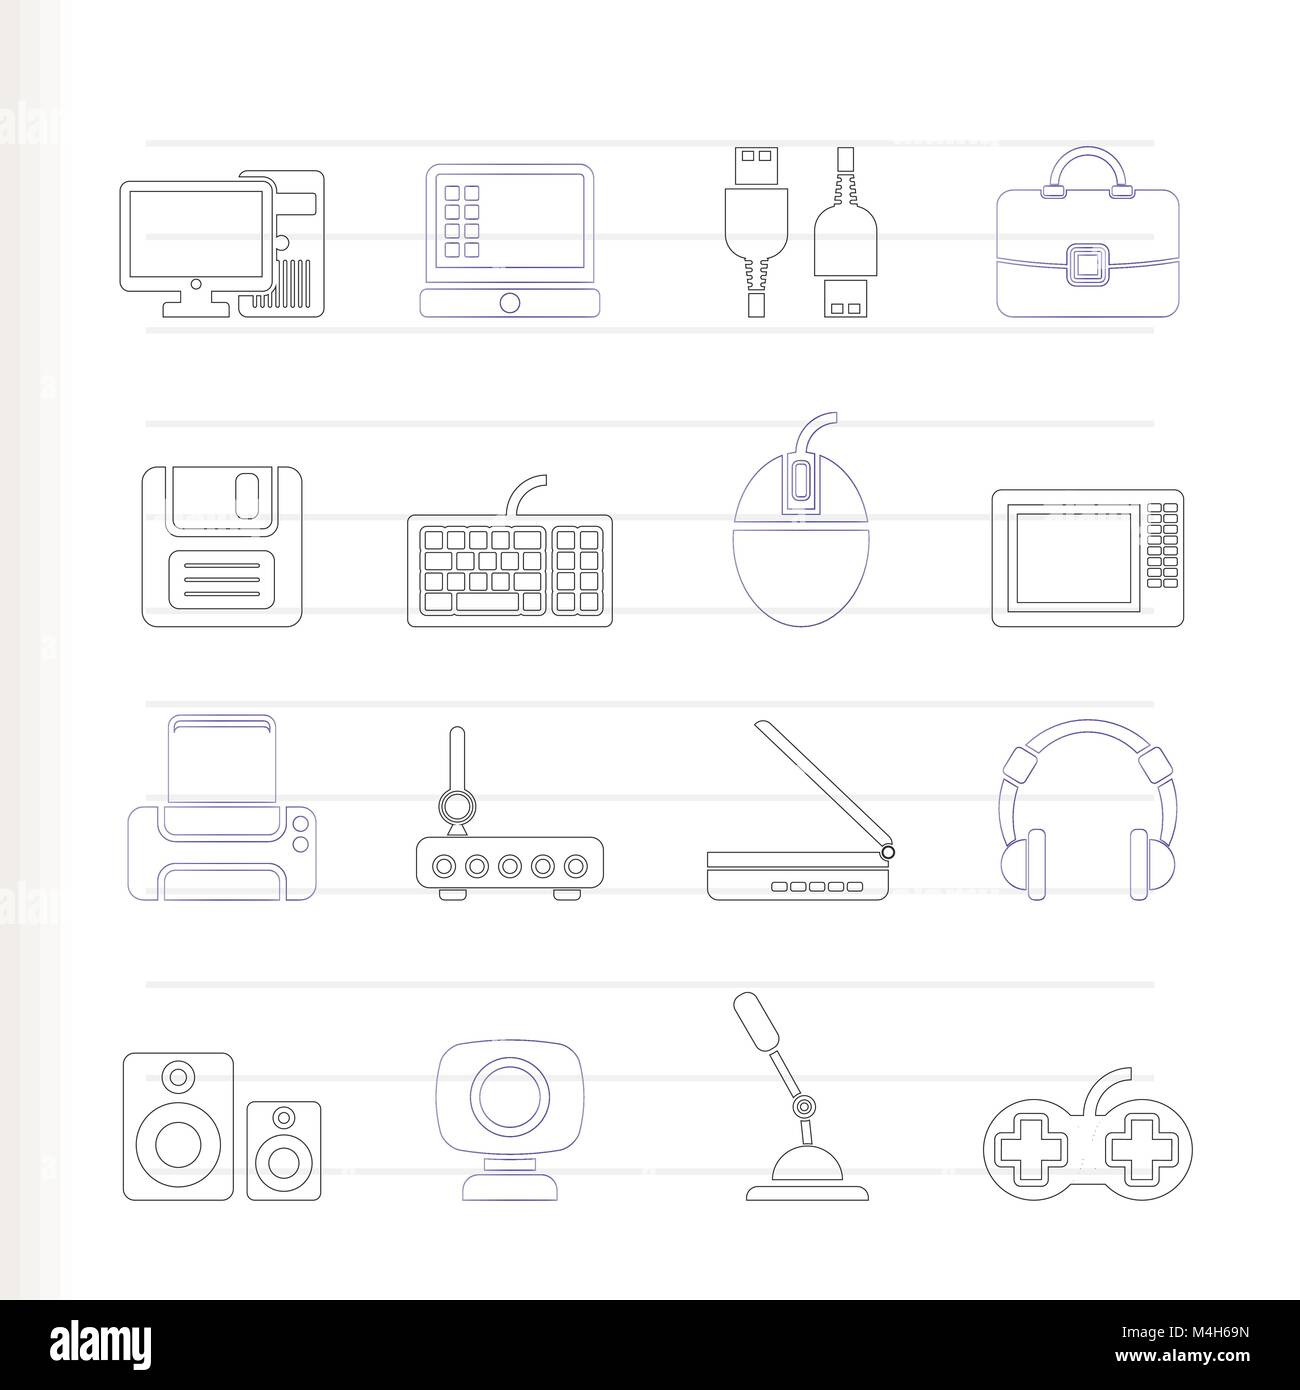 Computer equipment and periphery icons - vector icon set - Stock Image